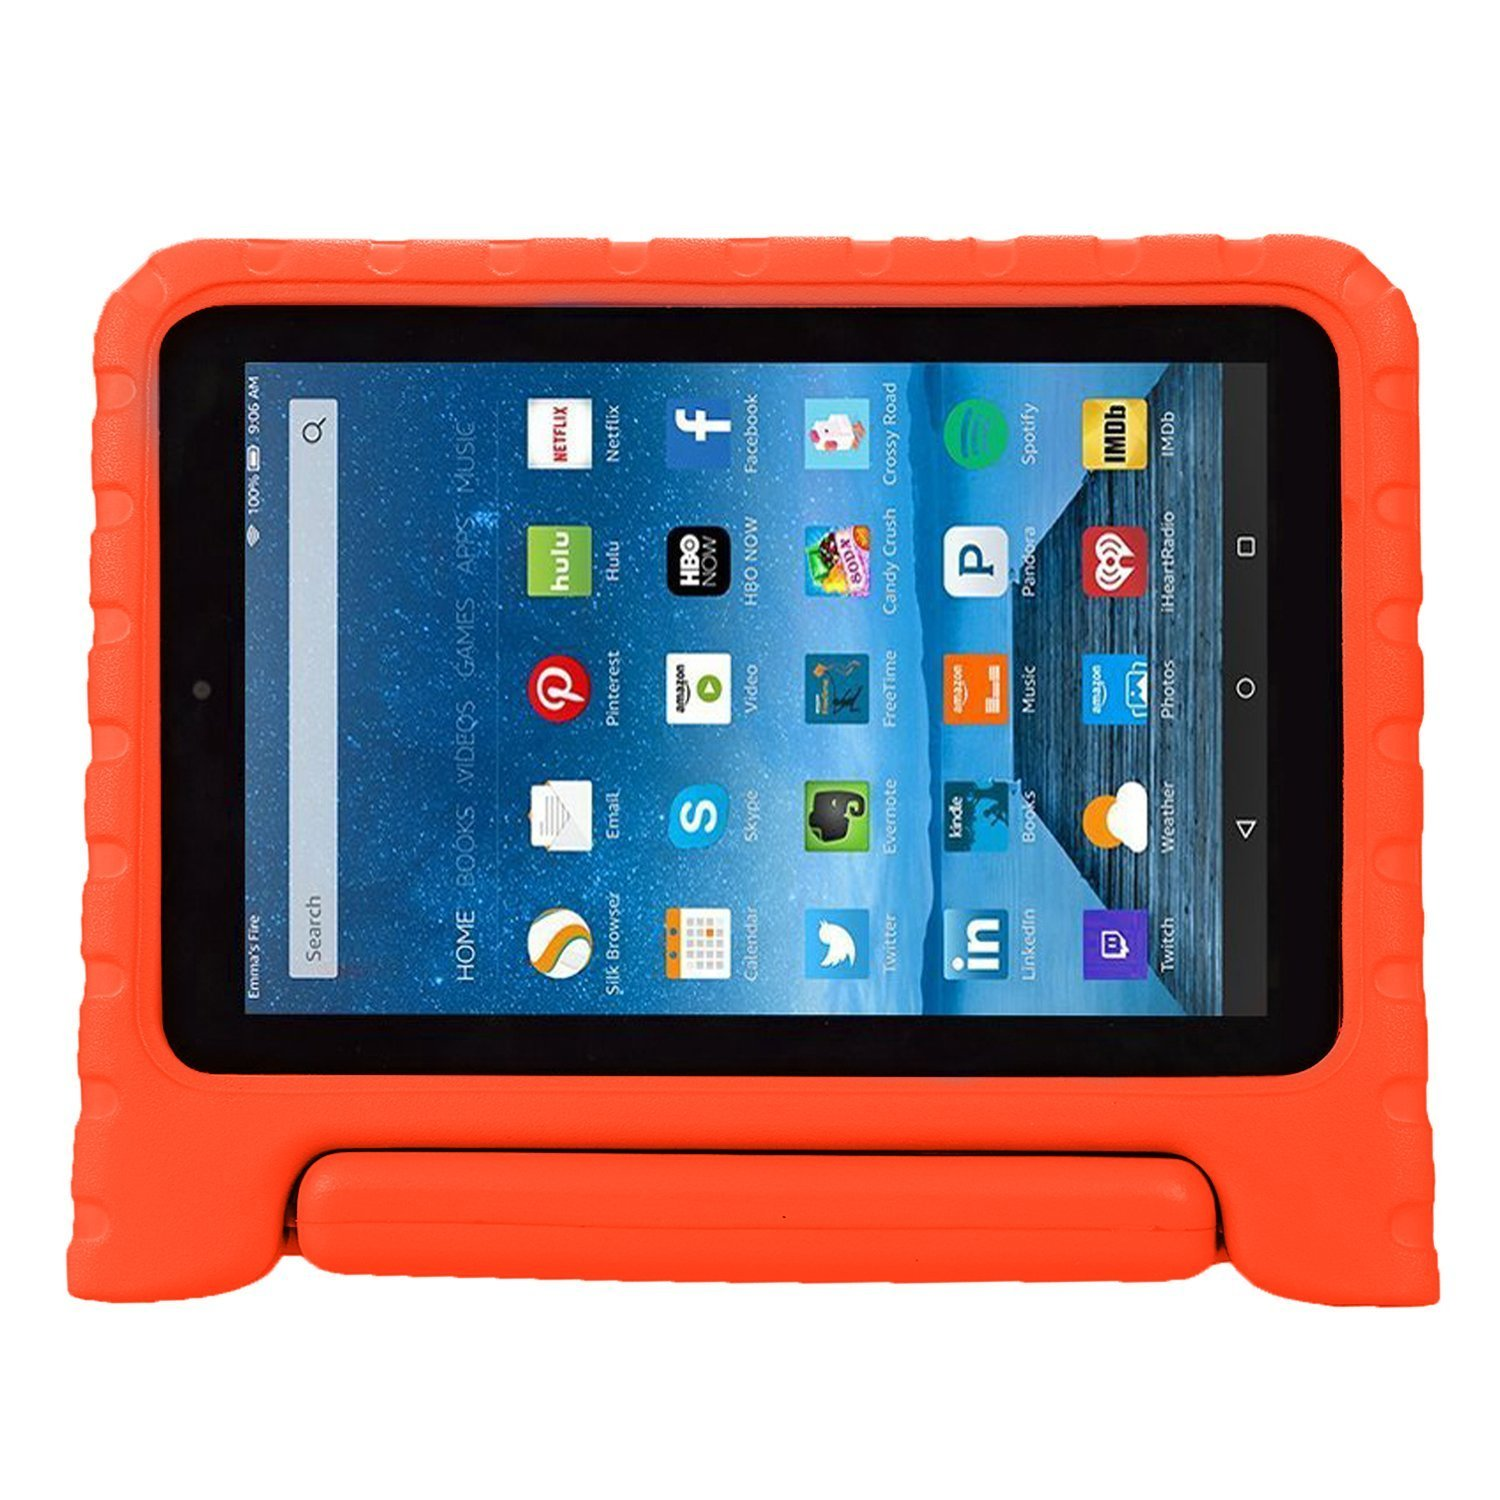 Purple 5th Gen-2015 Release /& 7th Gen-2017 Release Fire 7 2015 Case,Fire 7 2017 Case,Grand Sky Super Light Weight Shock Proof Handle Protective Stand Kids Case for Fire 7 inch Display Tablet